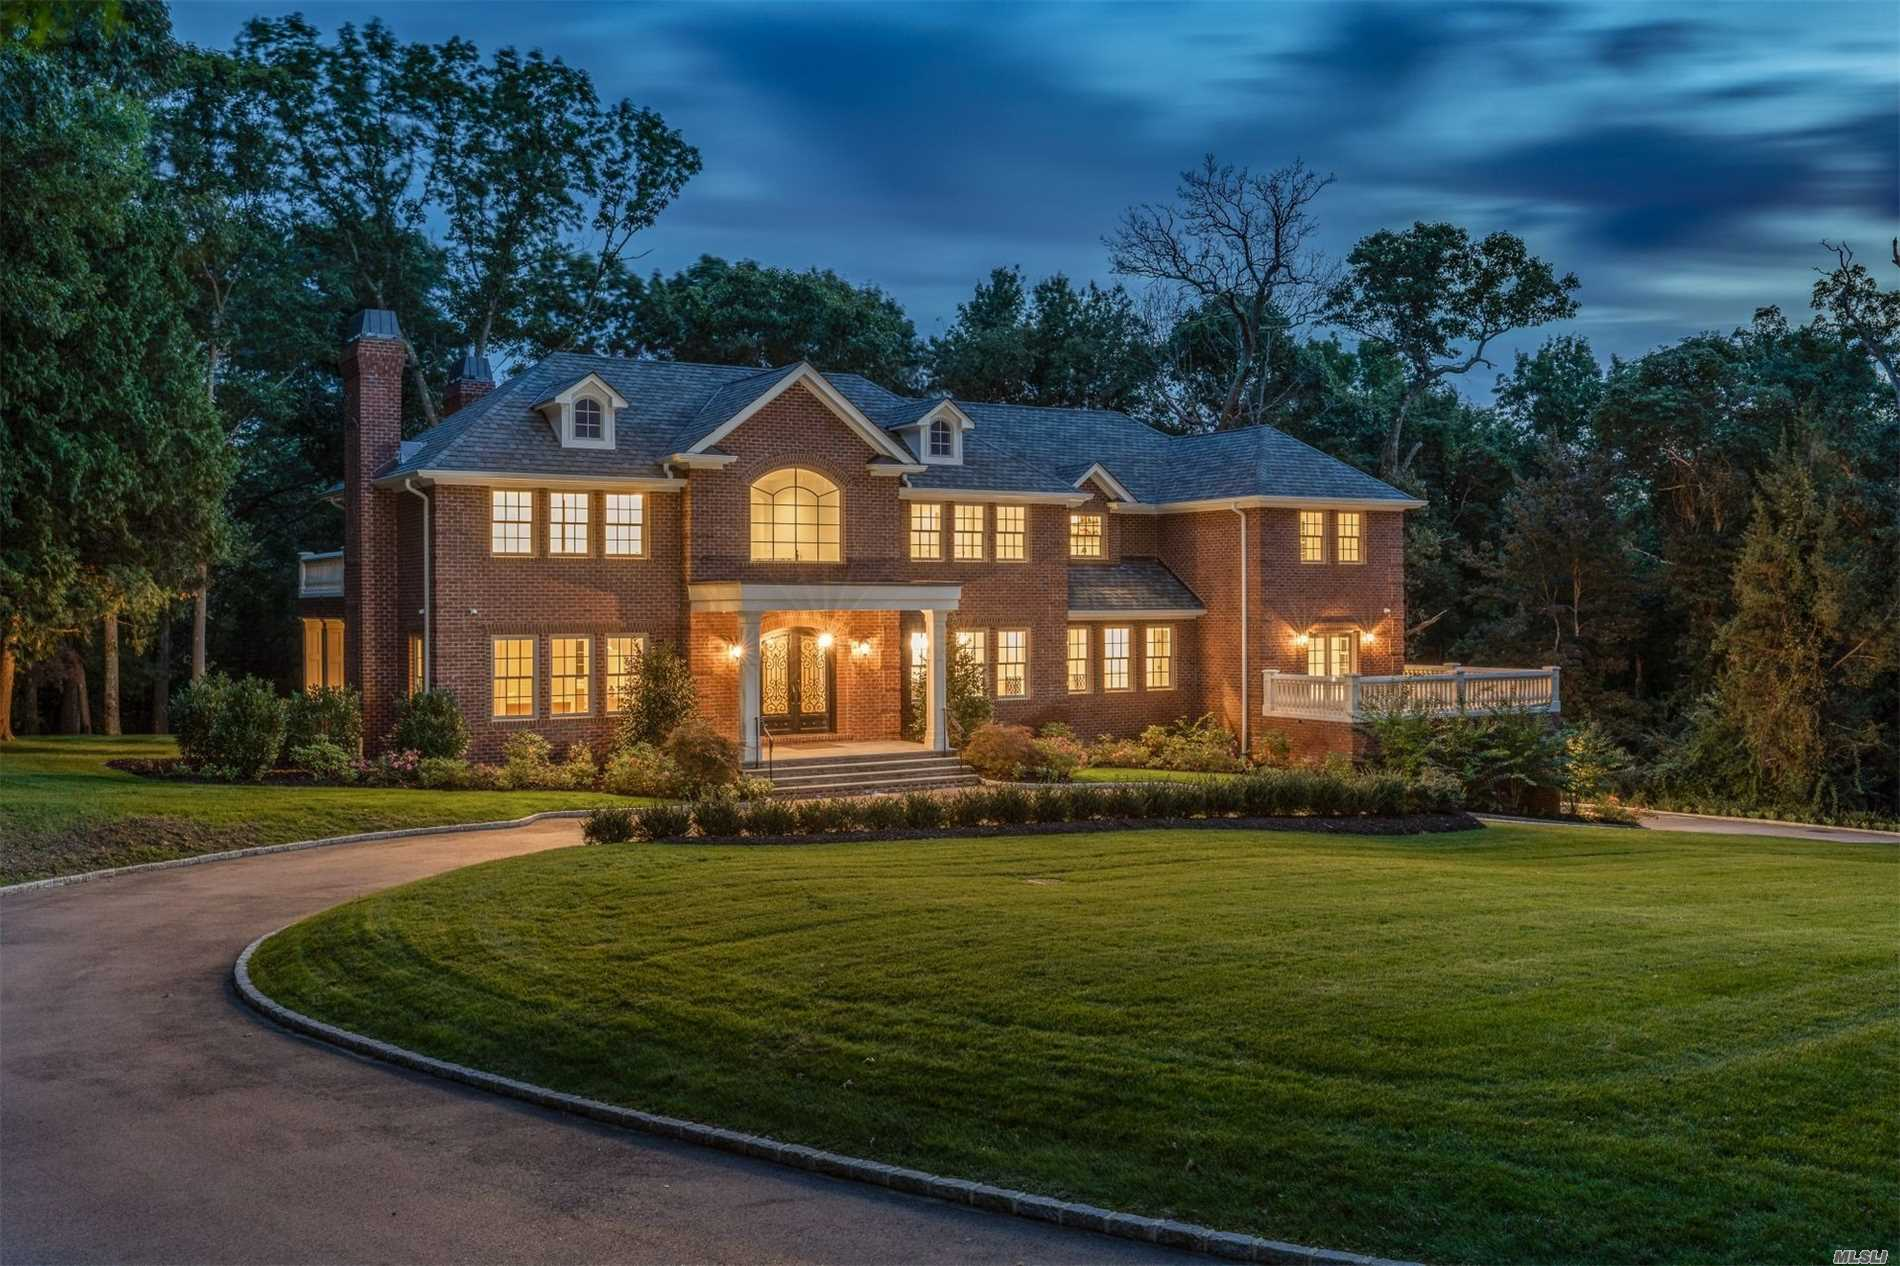 Brand New Construction! Stunning Brick Colonial Sited On 2Acres Bordering A Nature Preserve. Located On A Quiet Cul-De-Sac, This Timeless Beauty Blends Classic Design With Modern Technology. Notable Highlights Include An Impressive 2Story Entry, Gourmet Eat-In-Kitchen, Imported Walnut Flooring, Master Suite With Fireplace, Terrace & Spa-Like Marble Bath, All En-Suite Bedrooms, Full Finished Lower Level W/ Theatre, 3Car Garage, & Control4 Security System. Excellent Location. Top Schools Nearby!